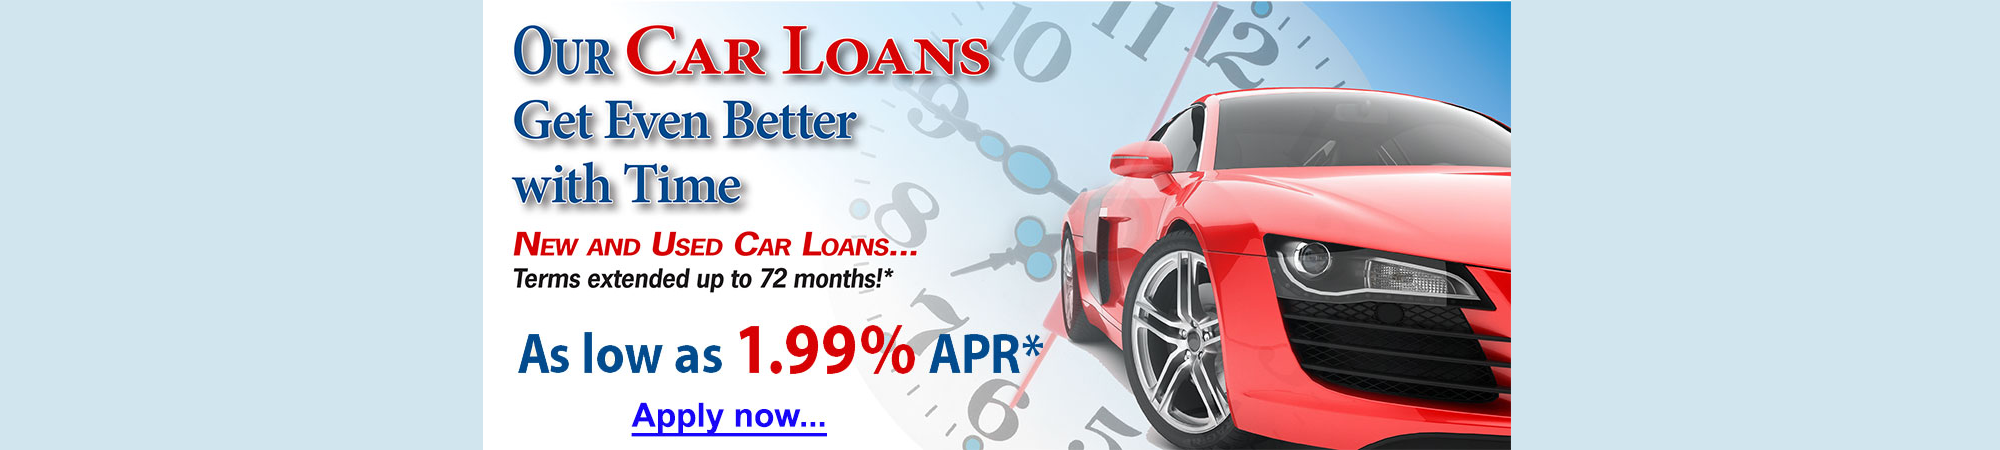 Our car loans get even better with time